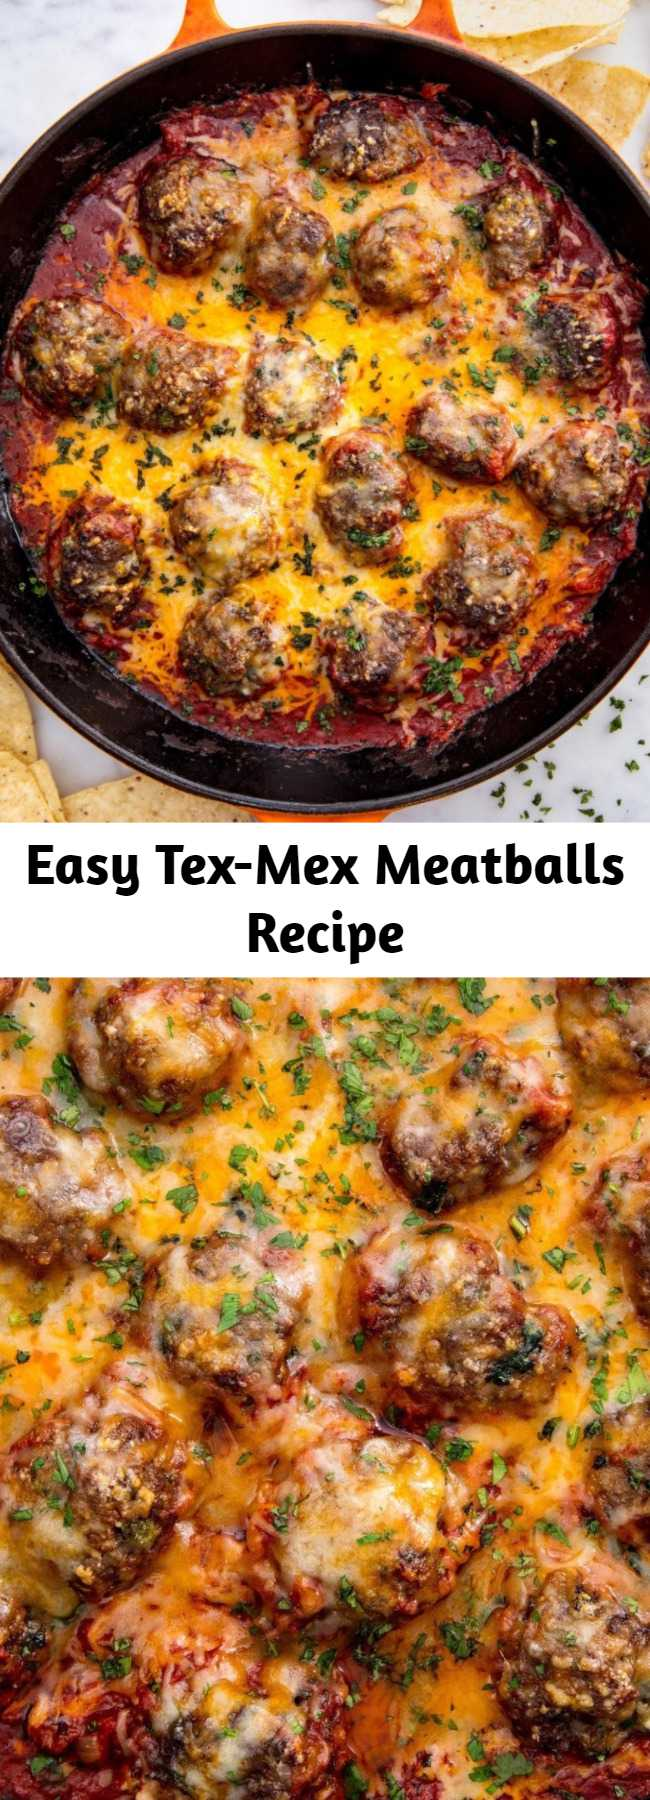 Easy Tex-Mex Meatballs Recipe - Kick up the Italian favorite with chipotle and spices. Pro tip: These meatballs make a killer sub. Throw them on a hero roll with extra sauce and melt some cheddar on top. #italianrecipes #mexicanrecipes #meatball #easyrecipes #lowcarbrecipes